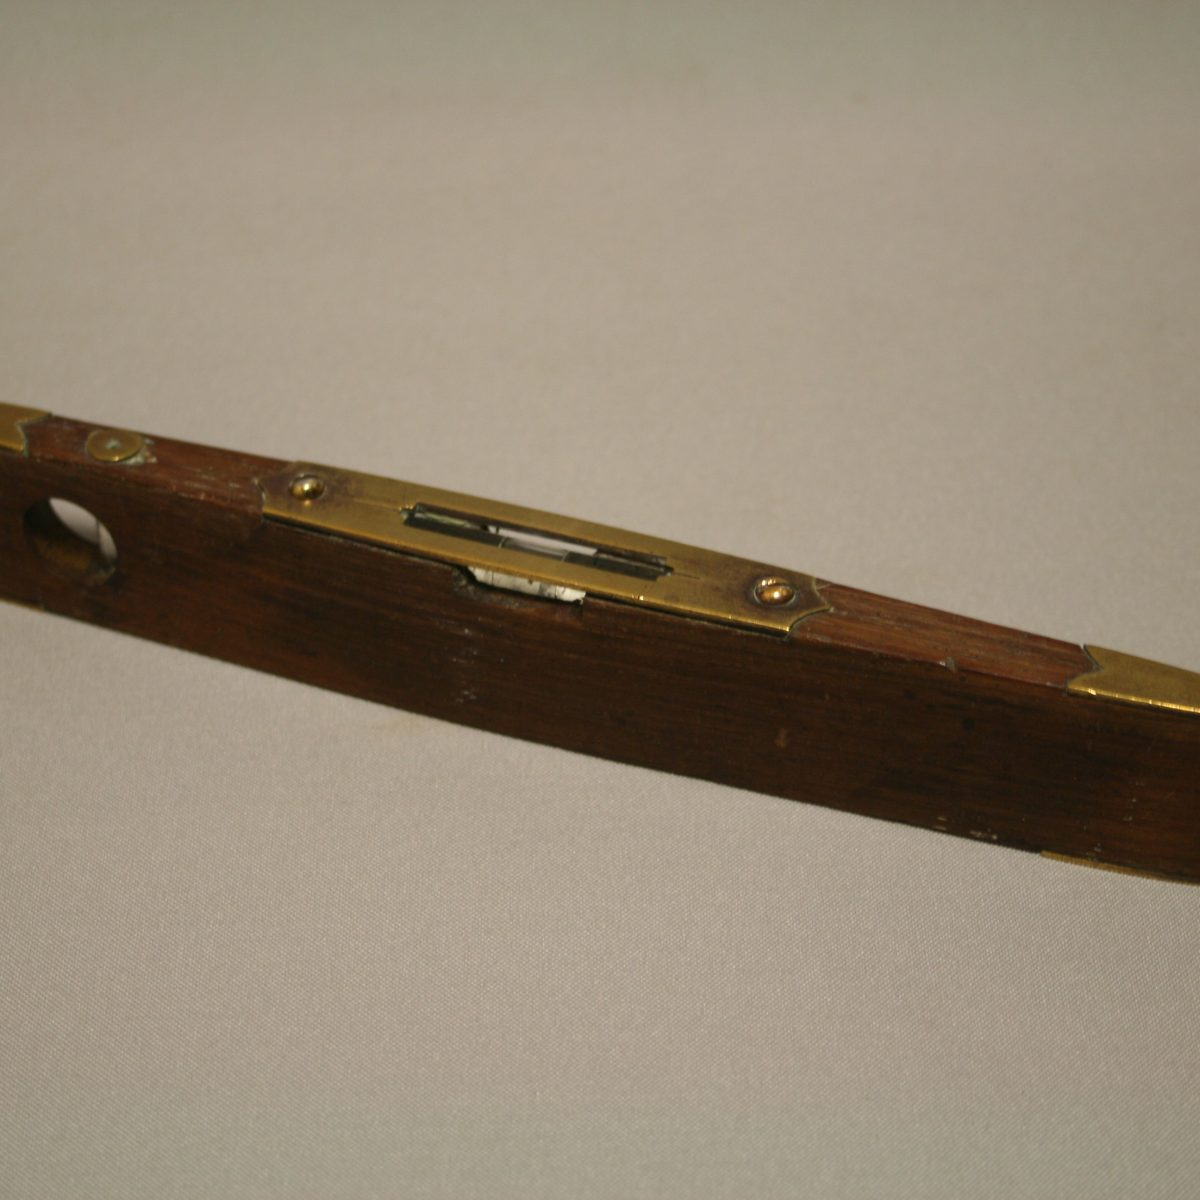 A wooden spirit level with brass detailing